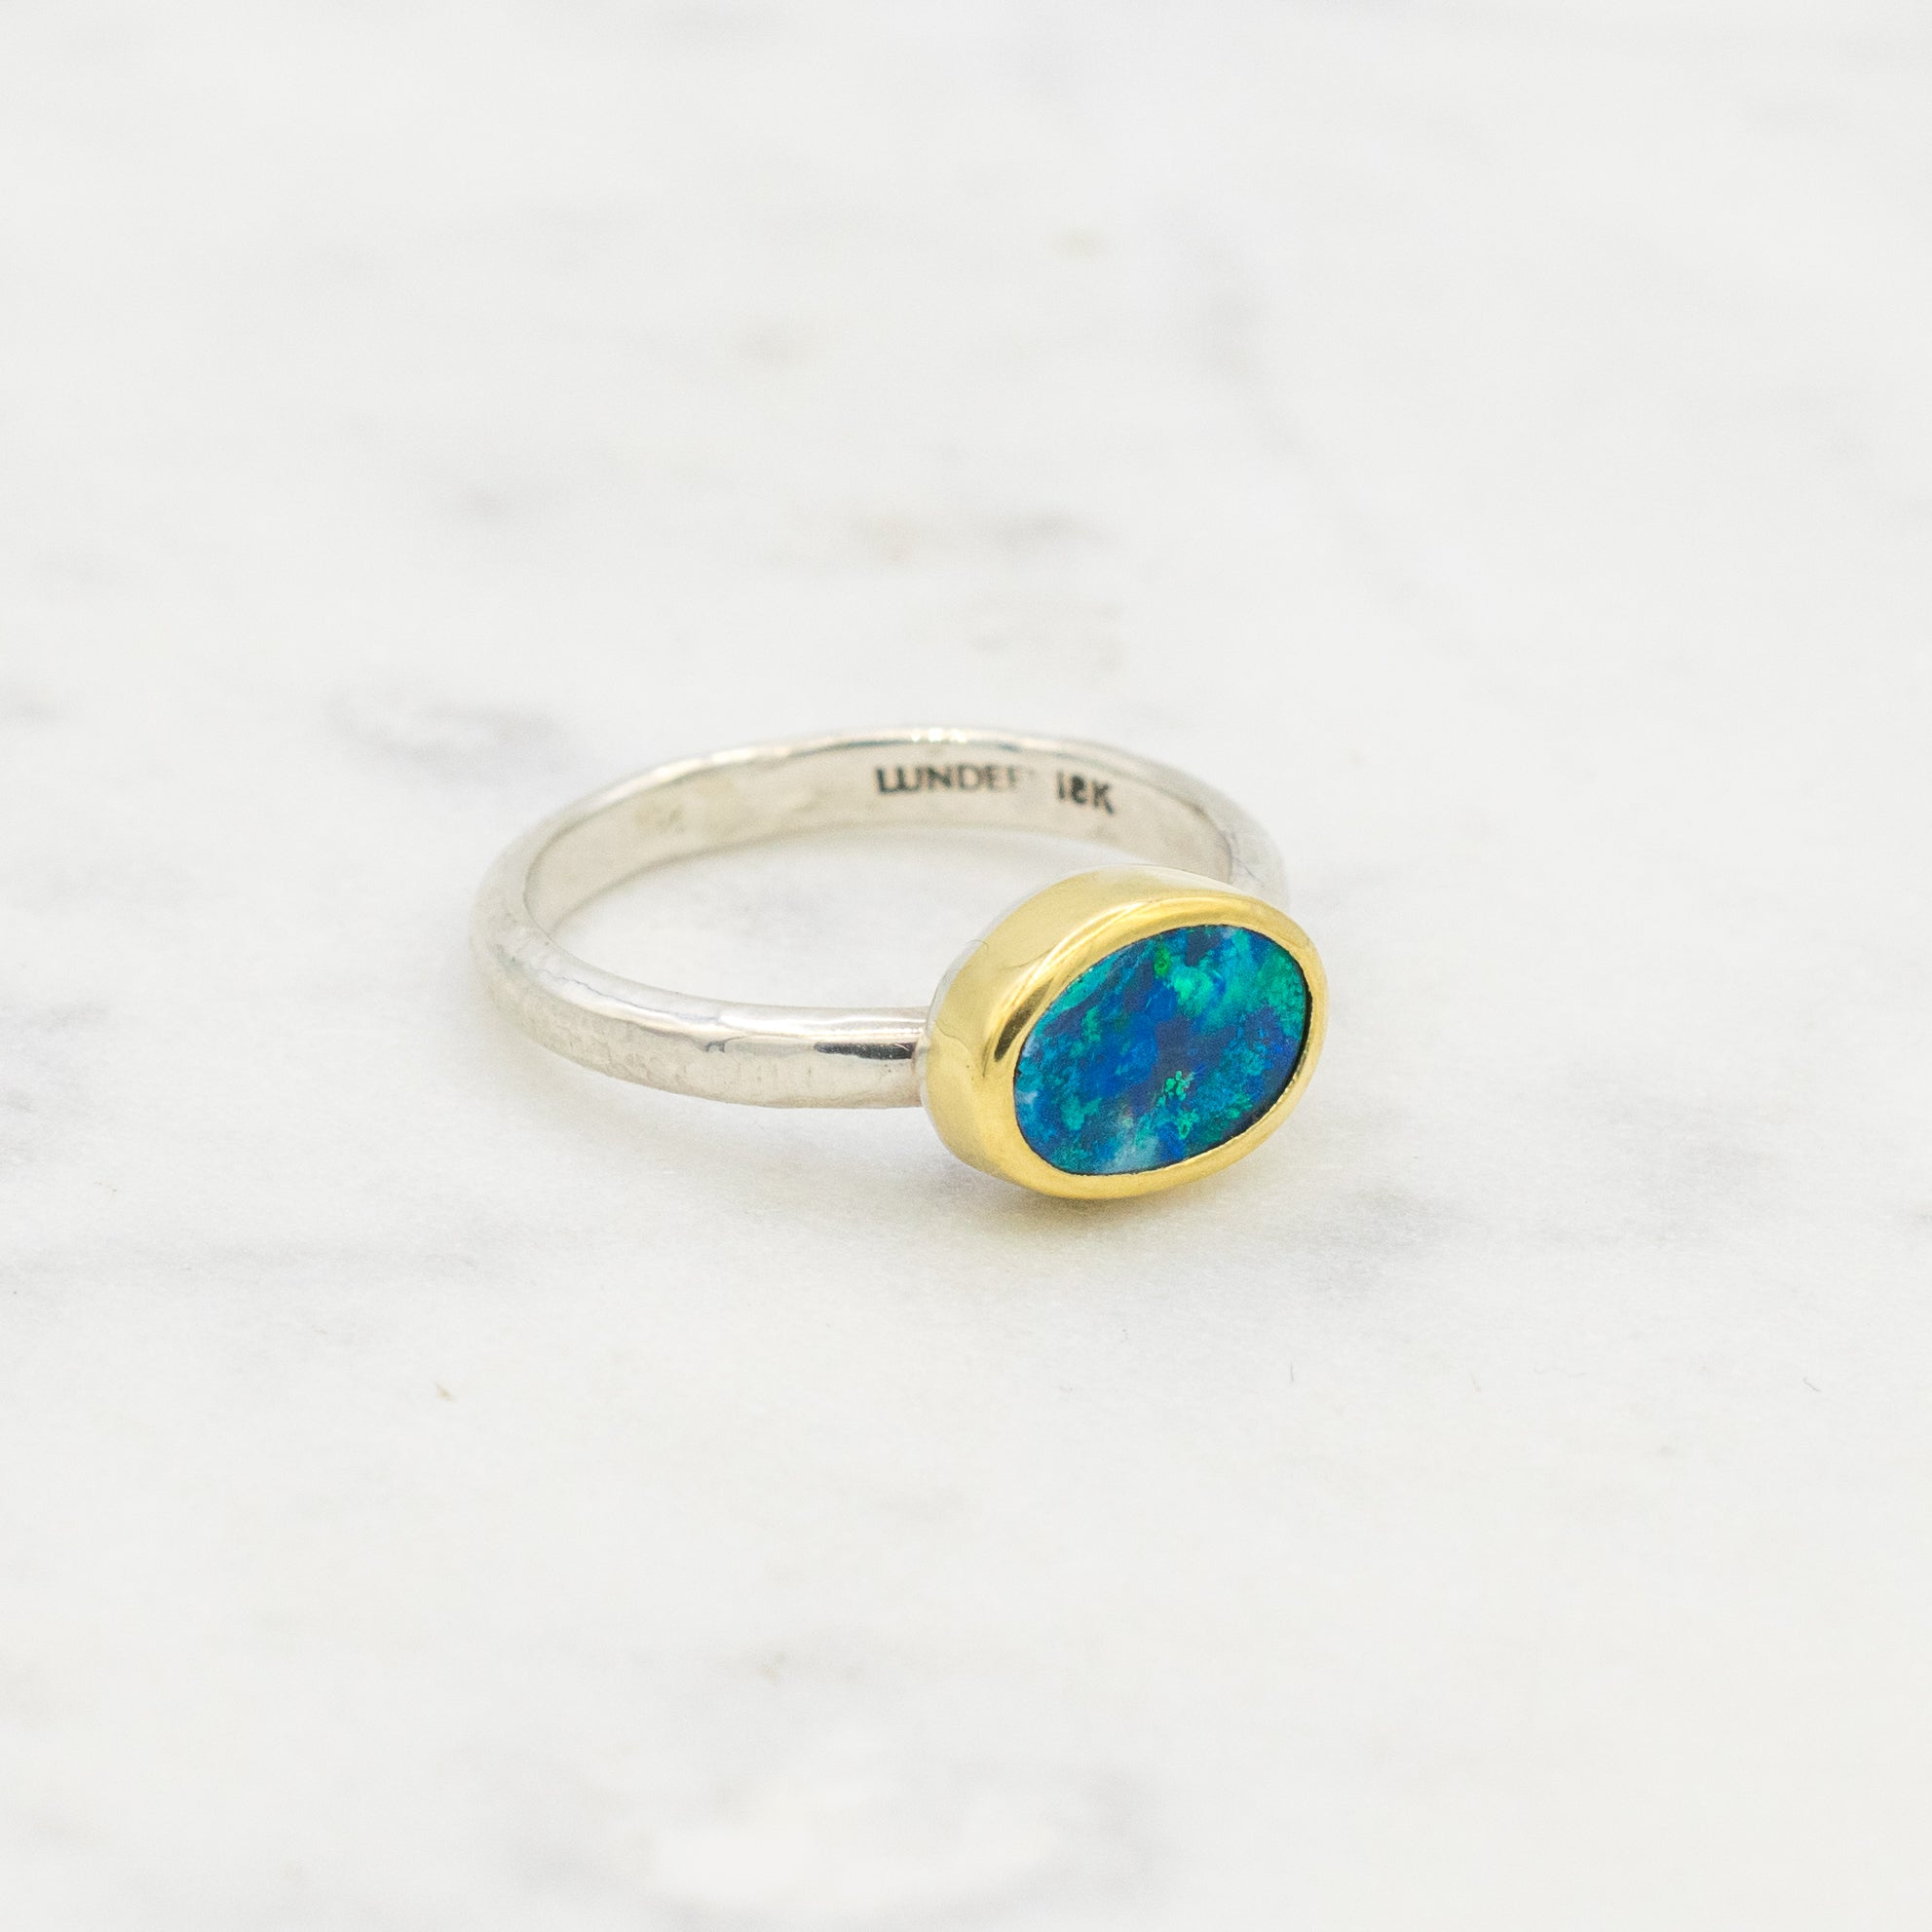 Australian opal, 18k yellow gold and sterling silver ring